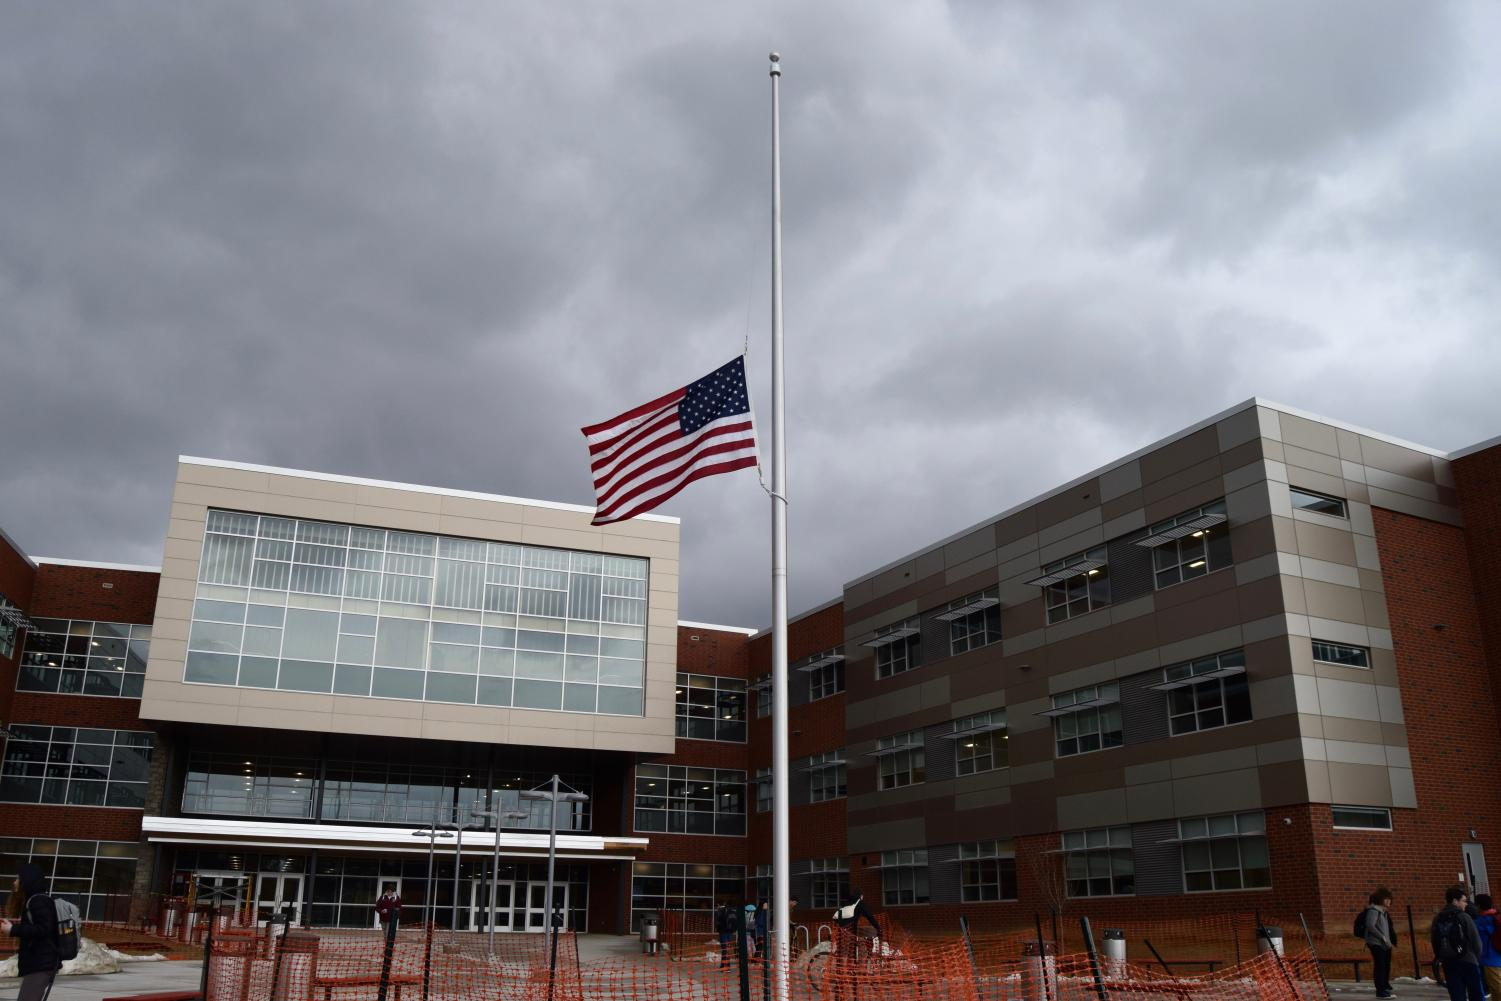 On Friday, February 16, two days after the shooting at Marjory Stoneman Douglas High School, the flag at State High sits at half mast in honor of the lives lost.